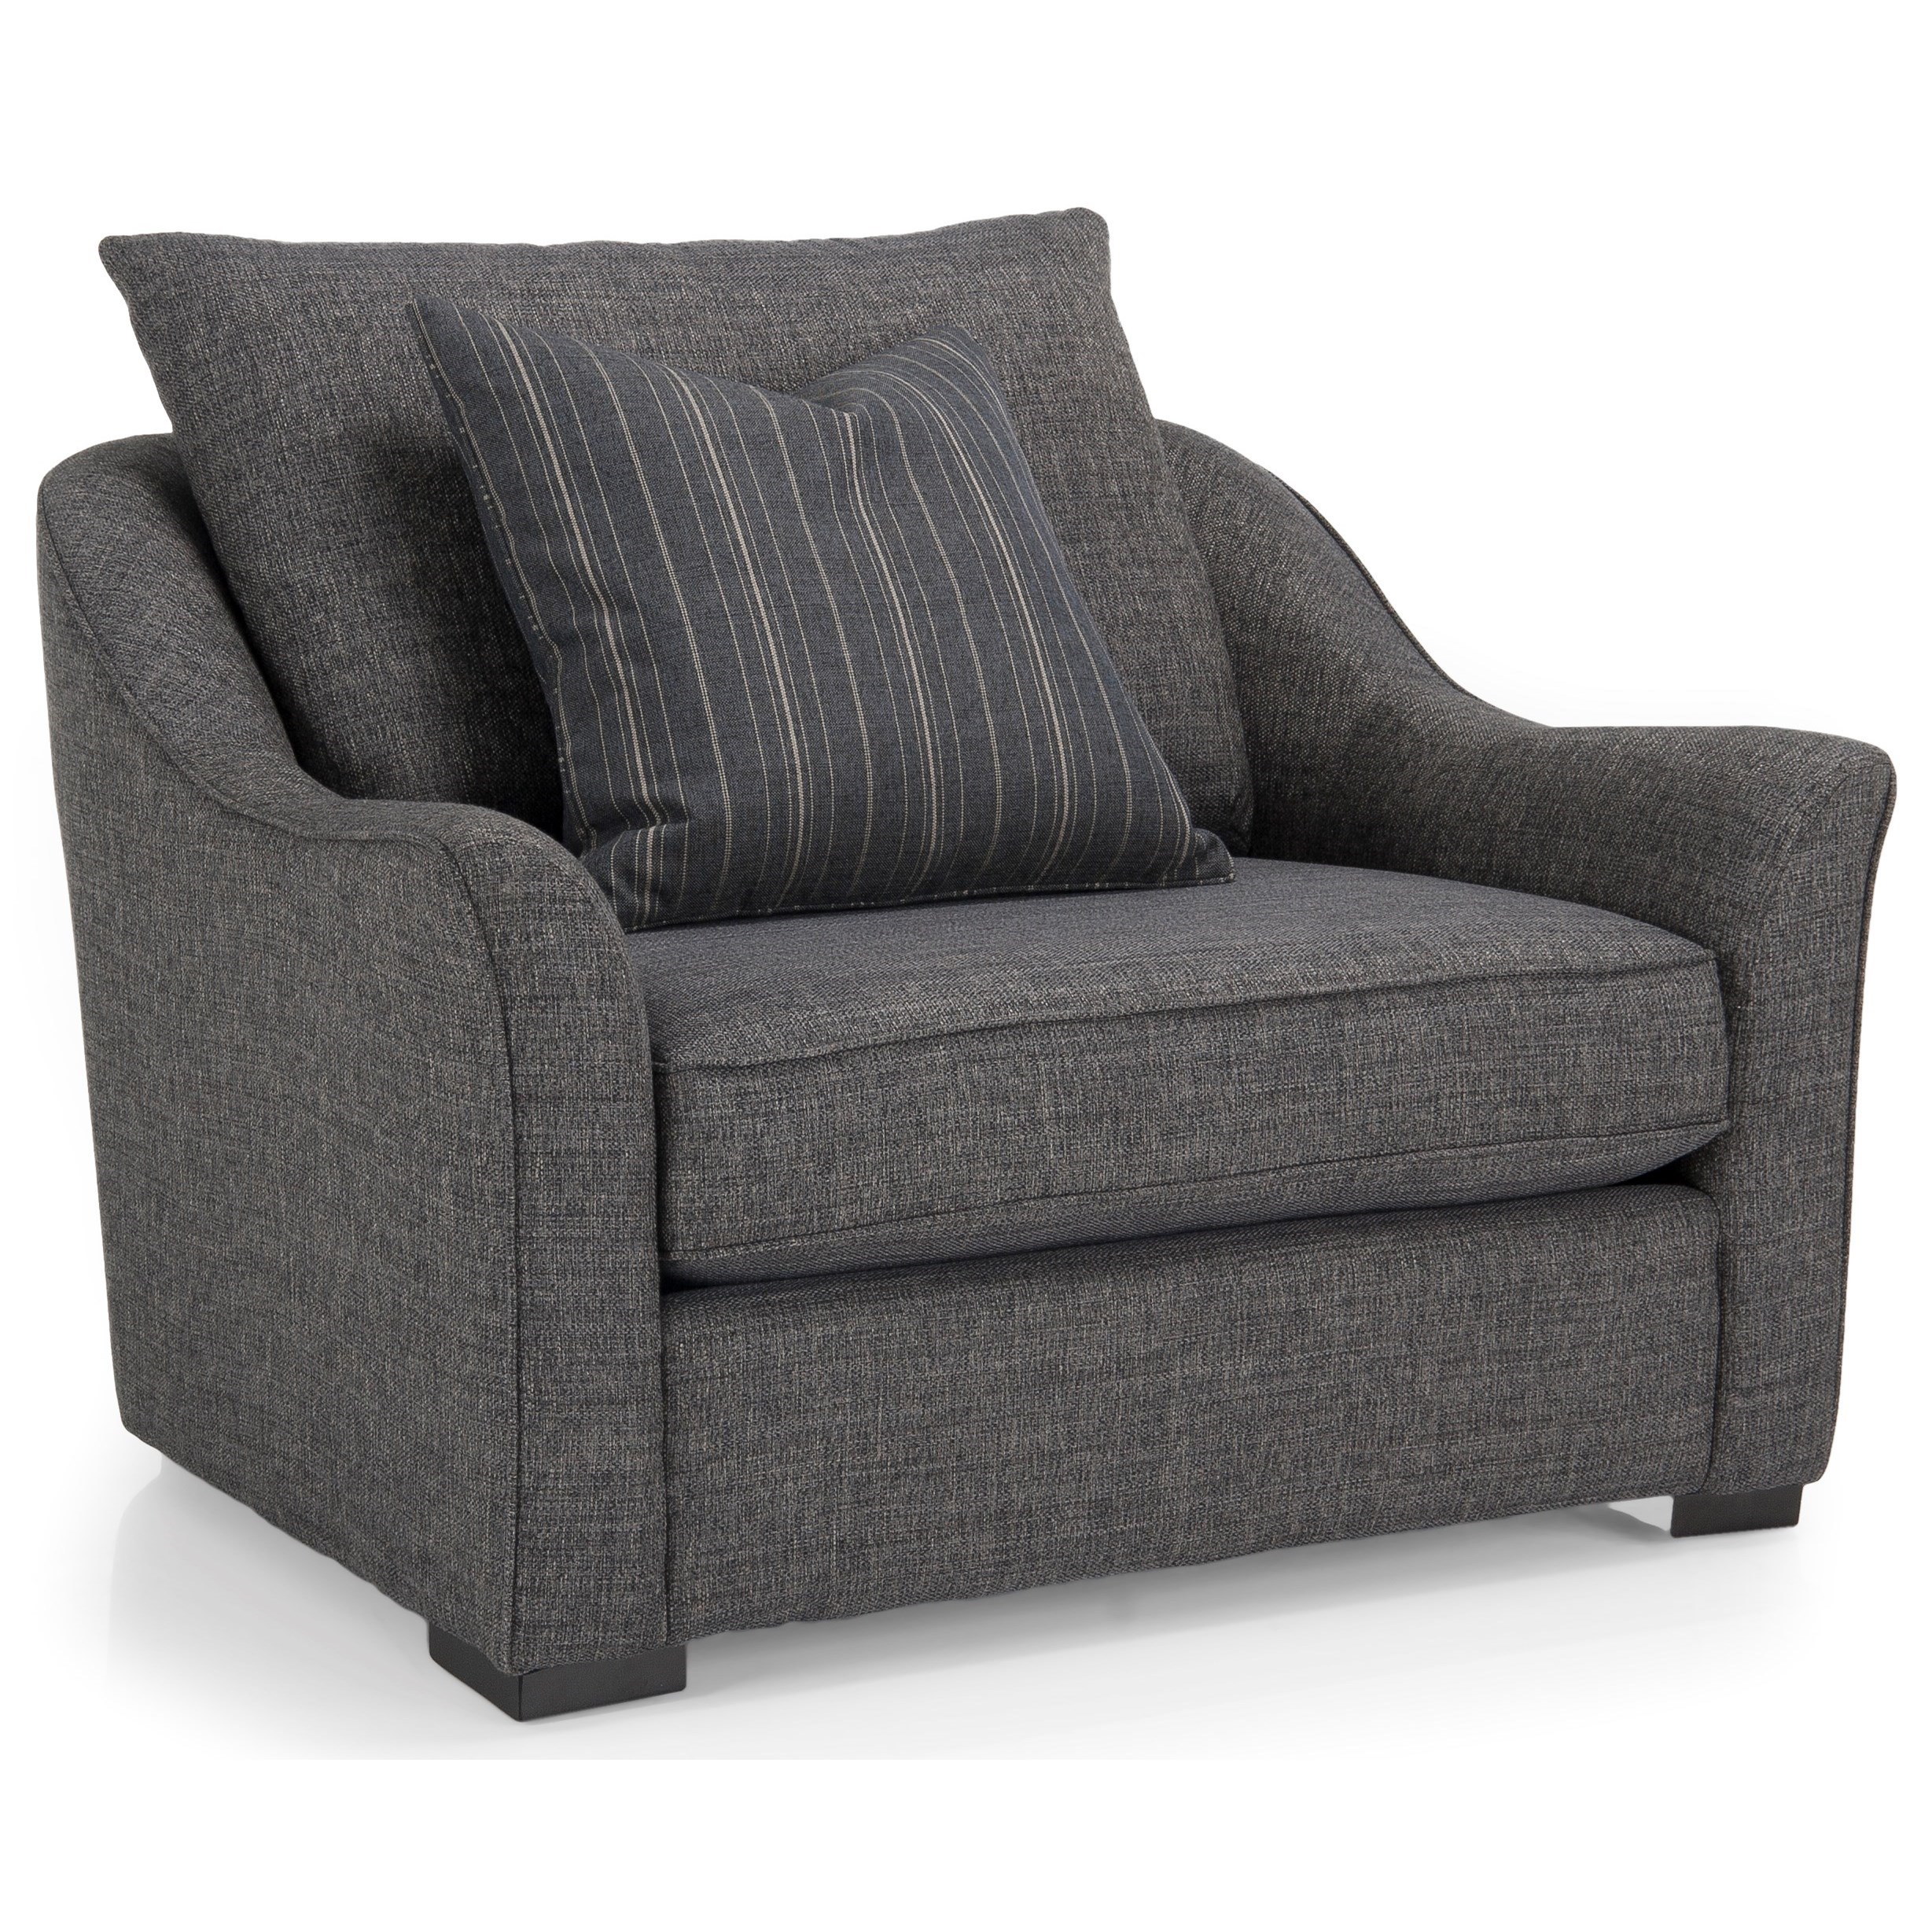 7112 Series Chair by Decor-Rest at Stoney Creek Furniture